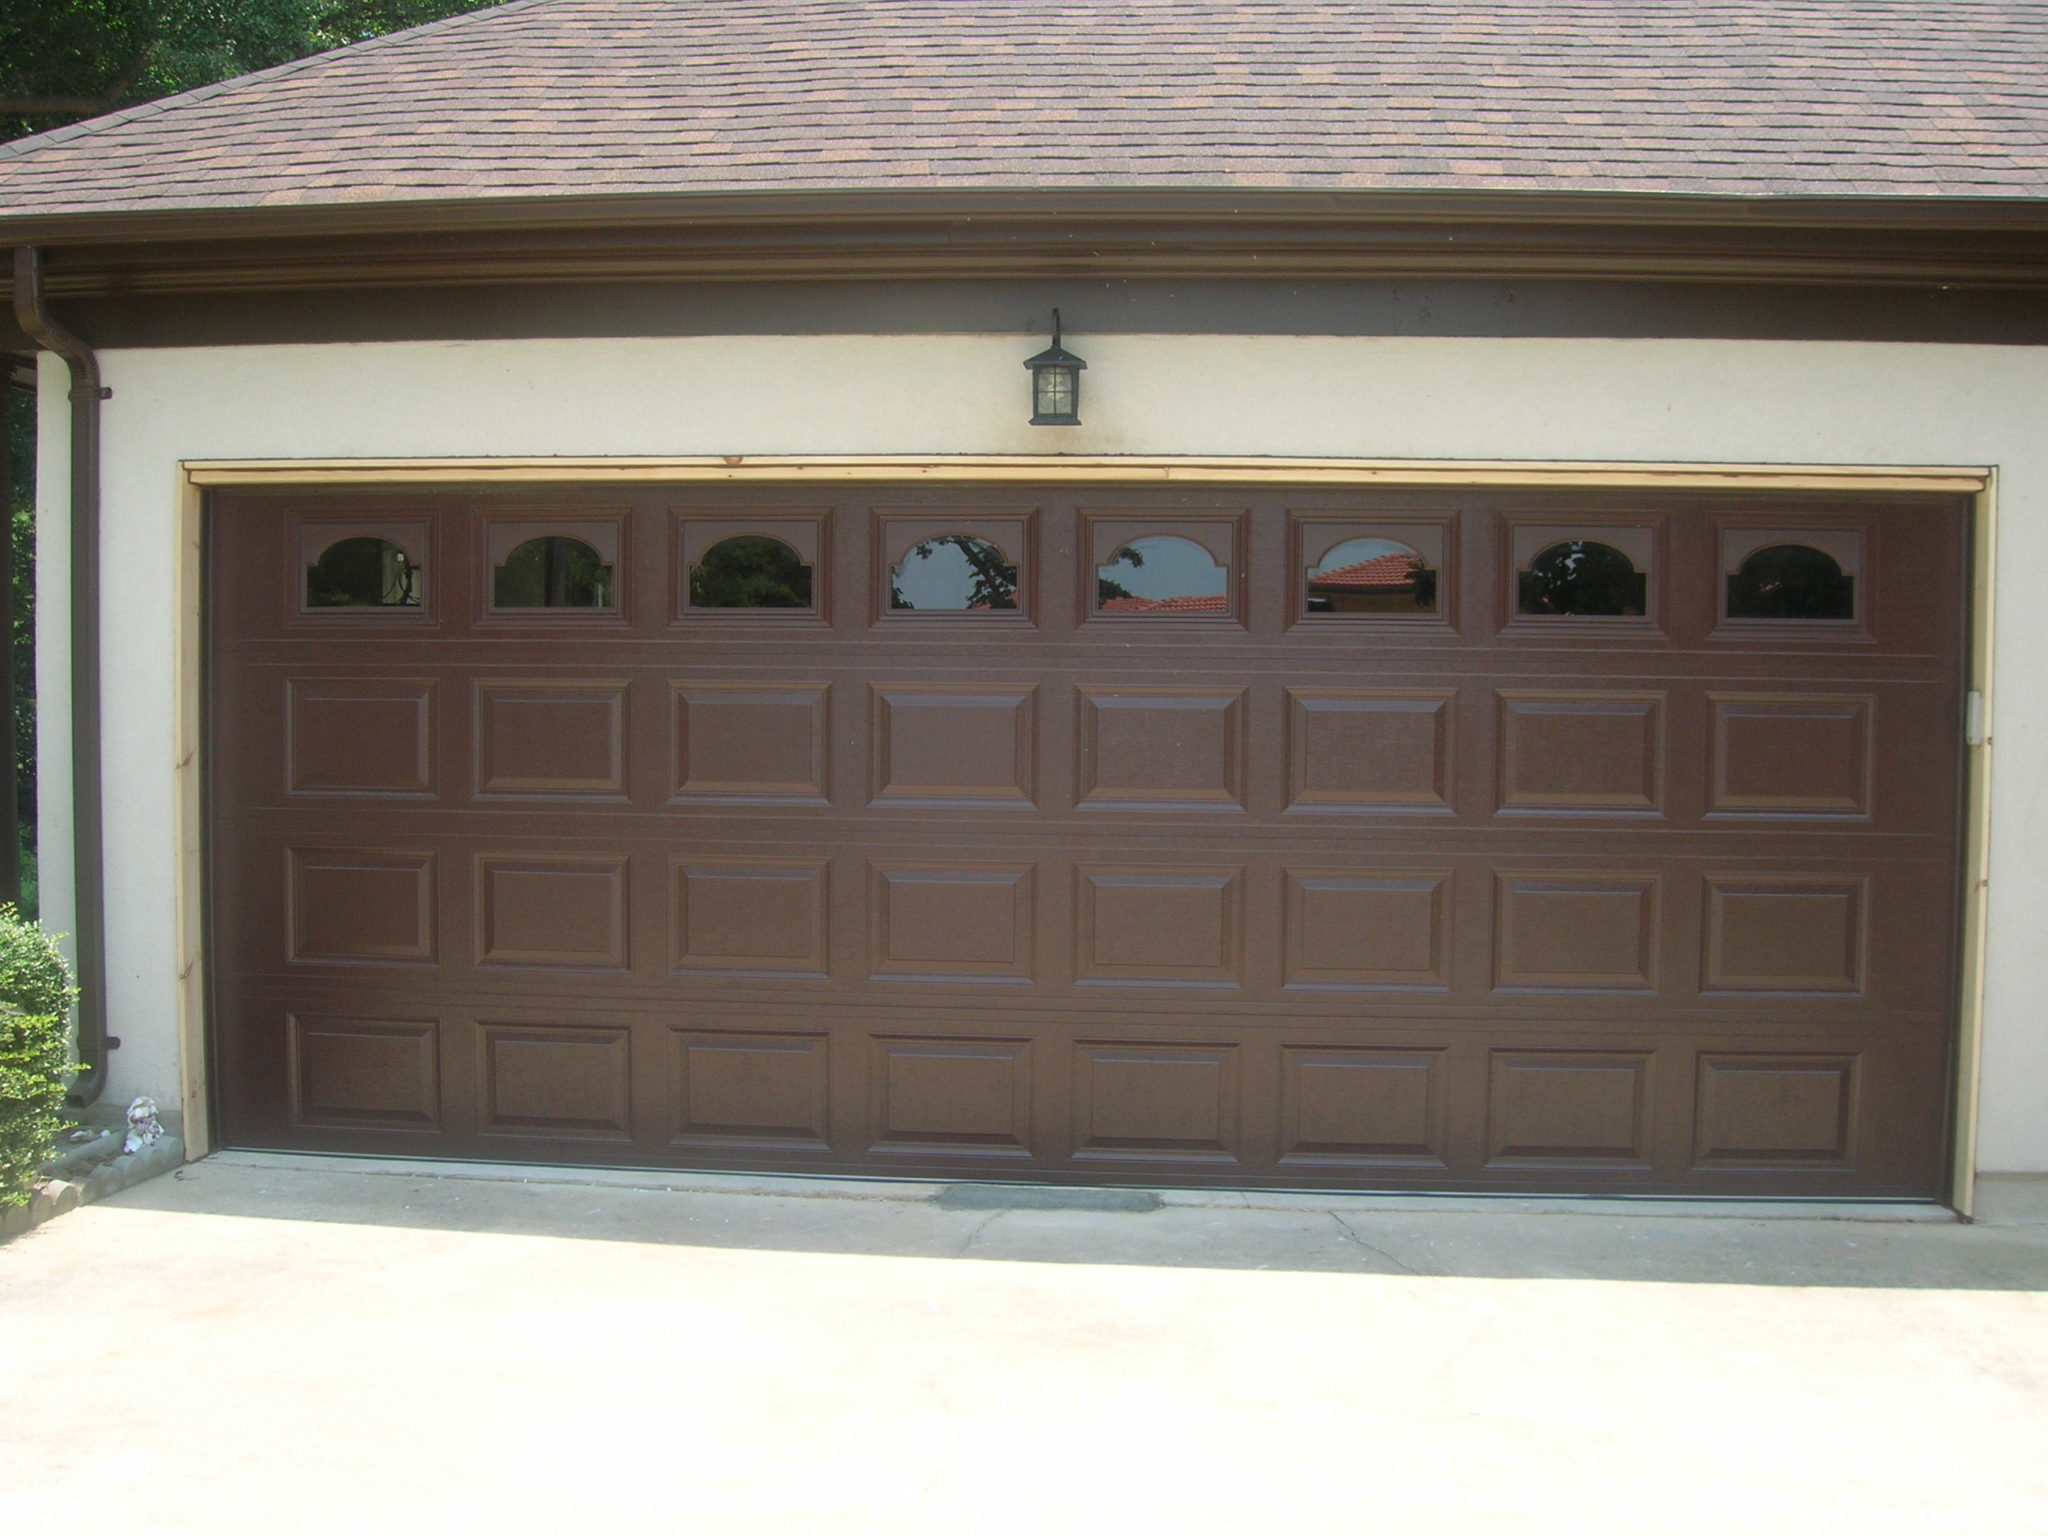 double garage door a plus garage doors. Black Bedroom Furniture Sets. Home Design Ideas